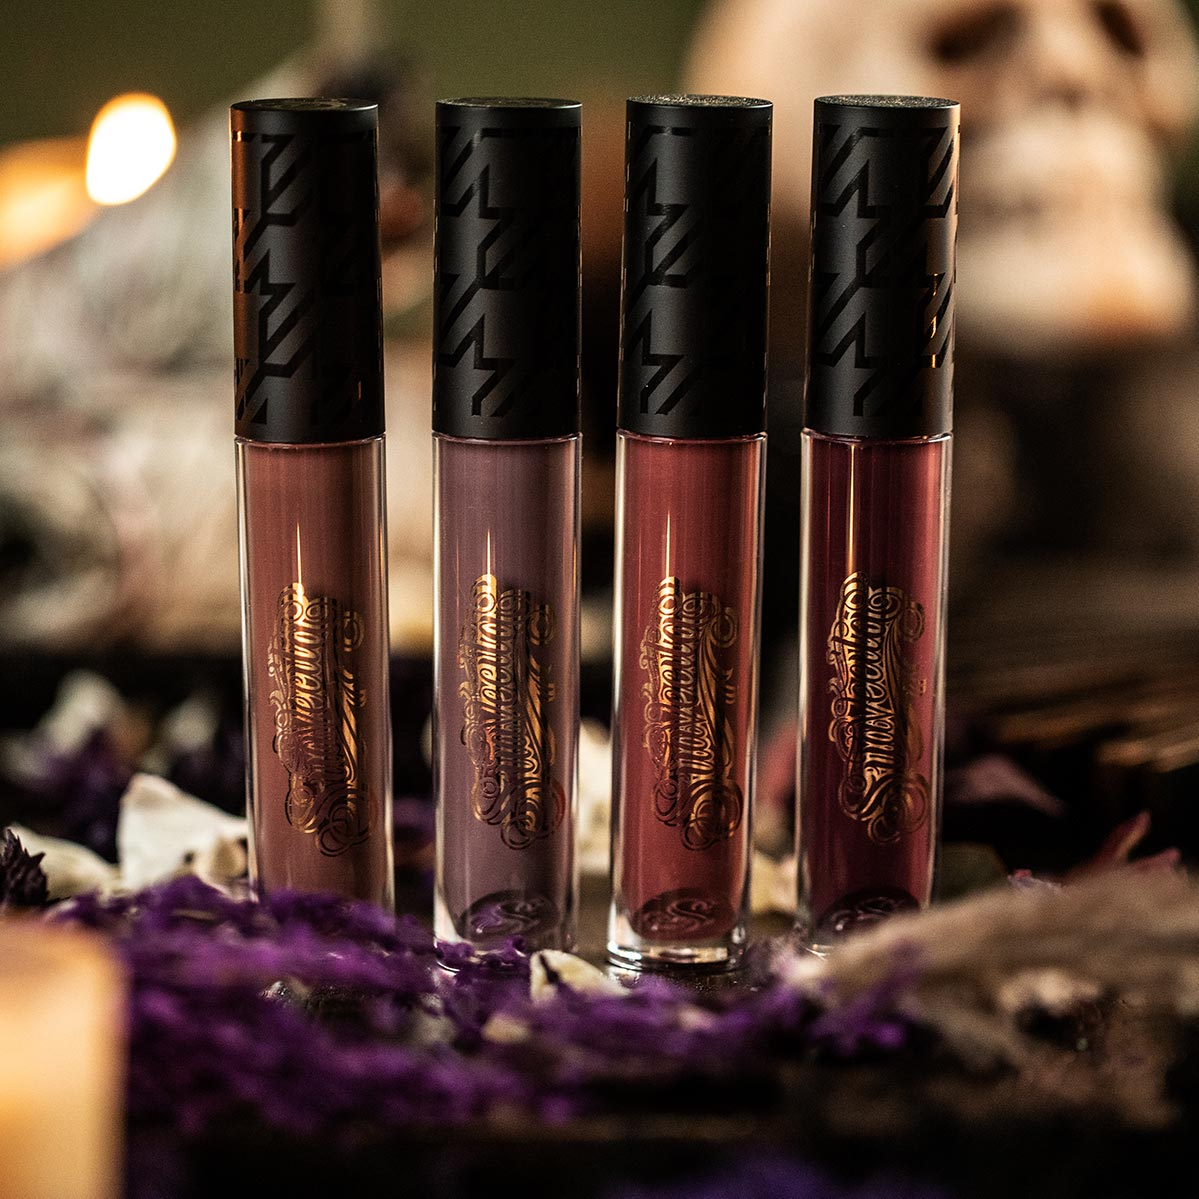 Suavecita Spellbound Lipgrip Collection on a table of dried flowers and sage